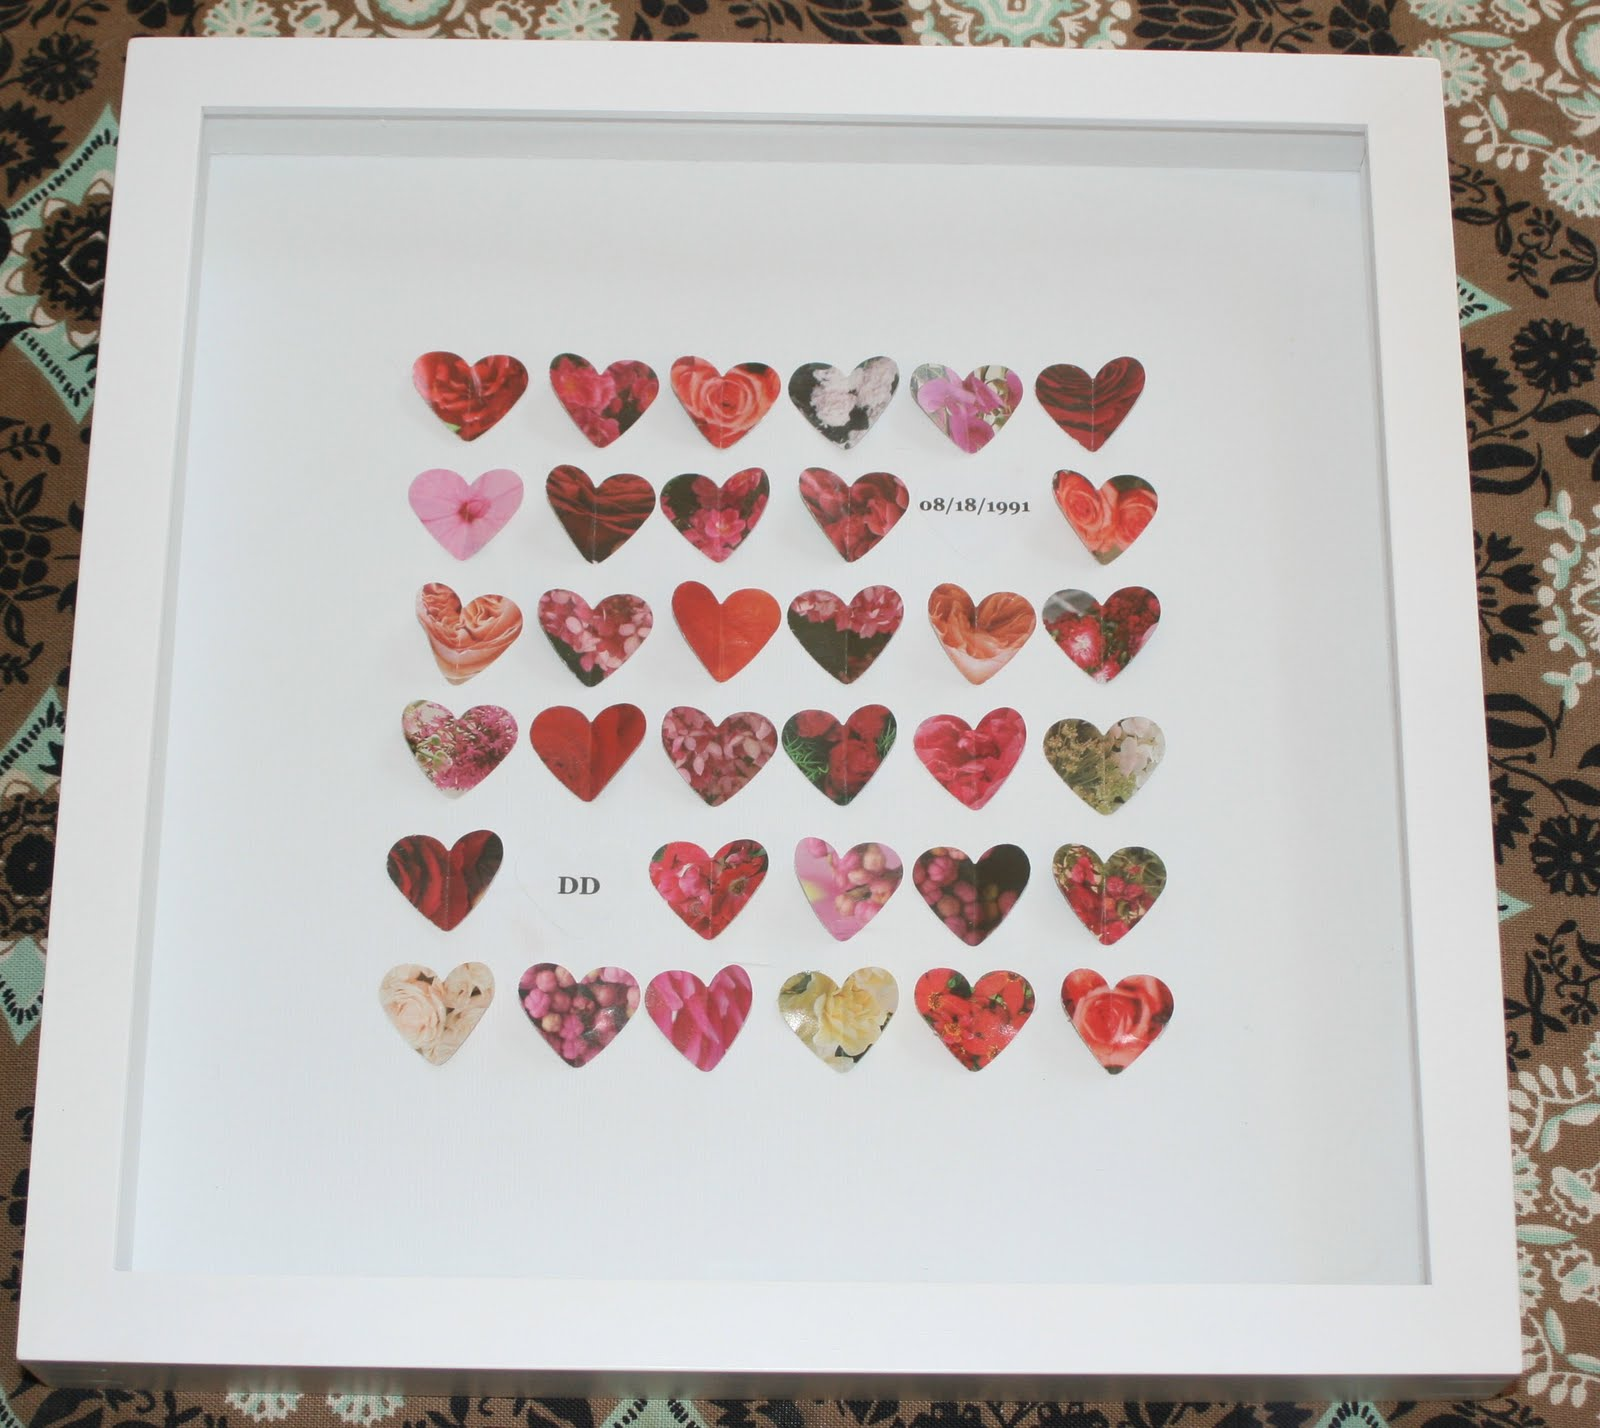 Adventures in Raising Girls: Homemade Anniversary/Wedding Gift Frame